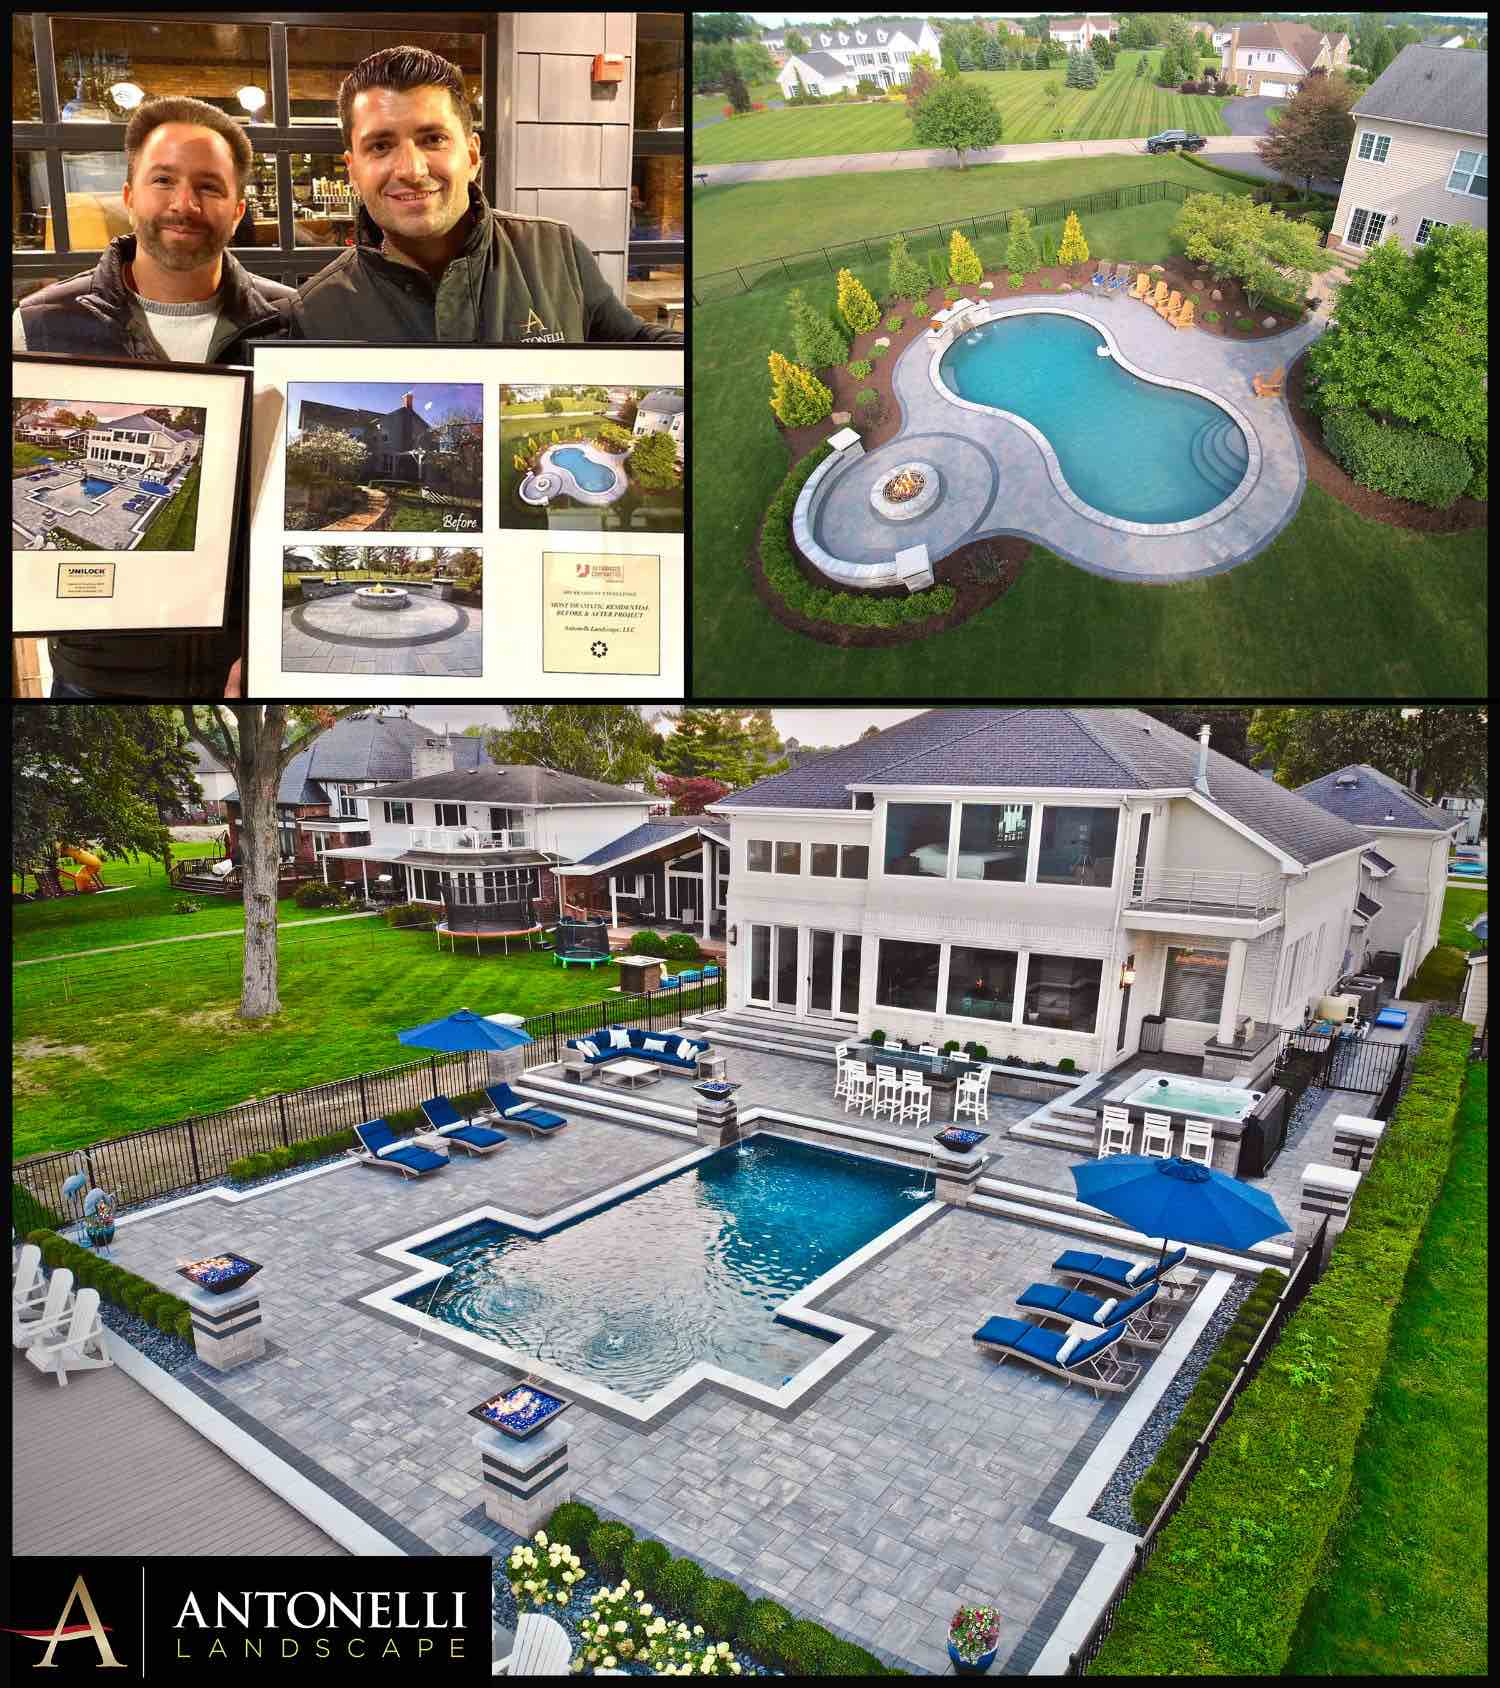 Unilock 2019 Most Dramatic Before & After Project -Milford (top) _ 2019 Project of Note- Chesterfield Twp